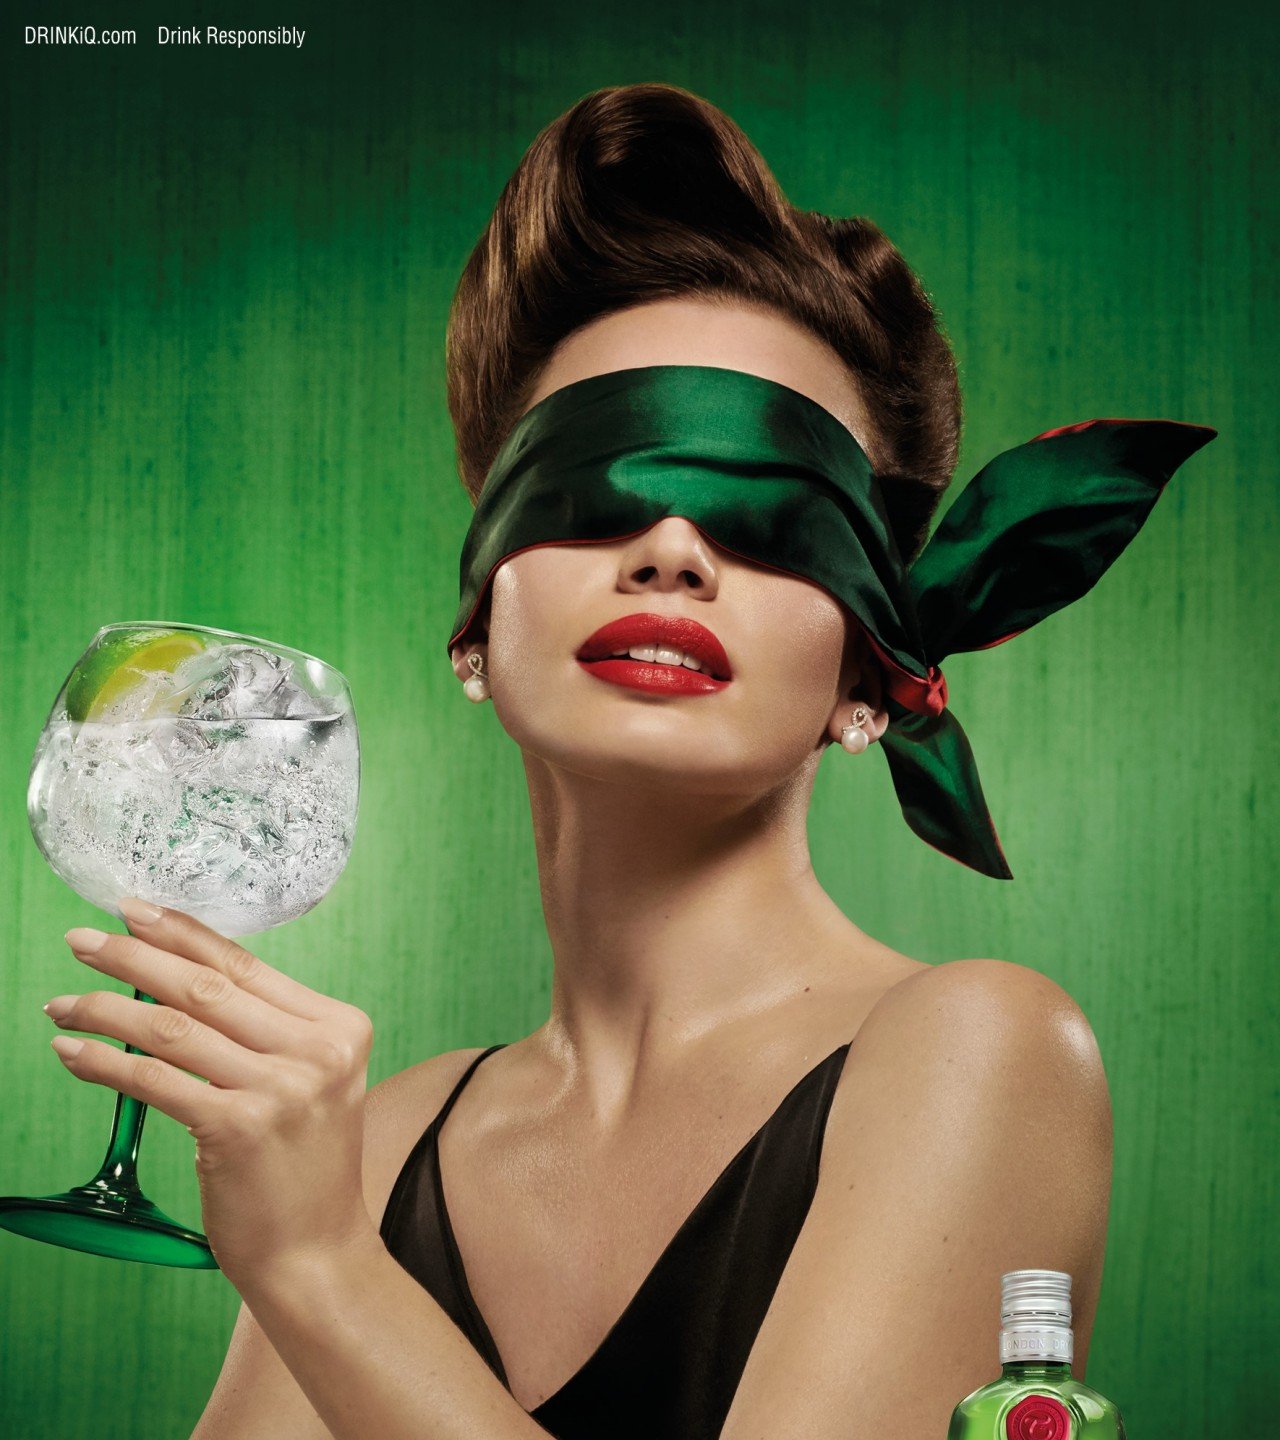 Tanqueray Campaign Shifts Focus To The Taste Of Its Gin To Stand Out In Competitive Market photo